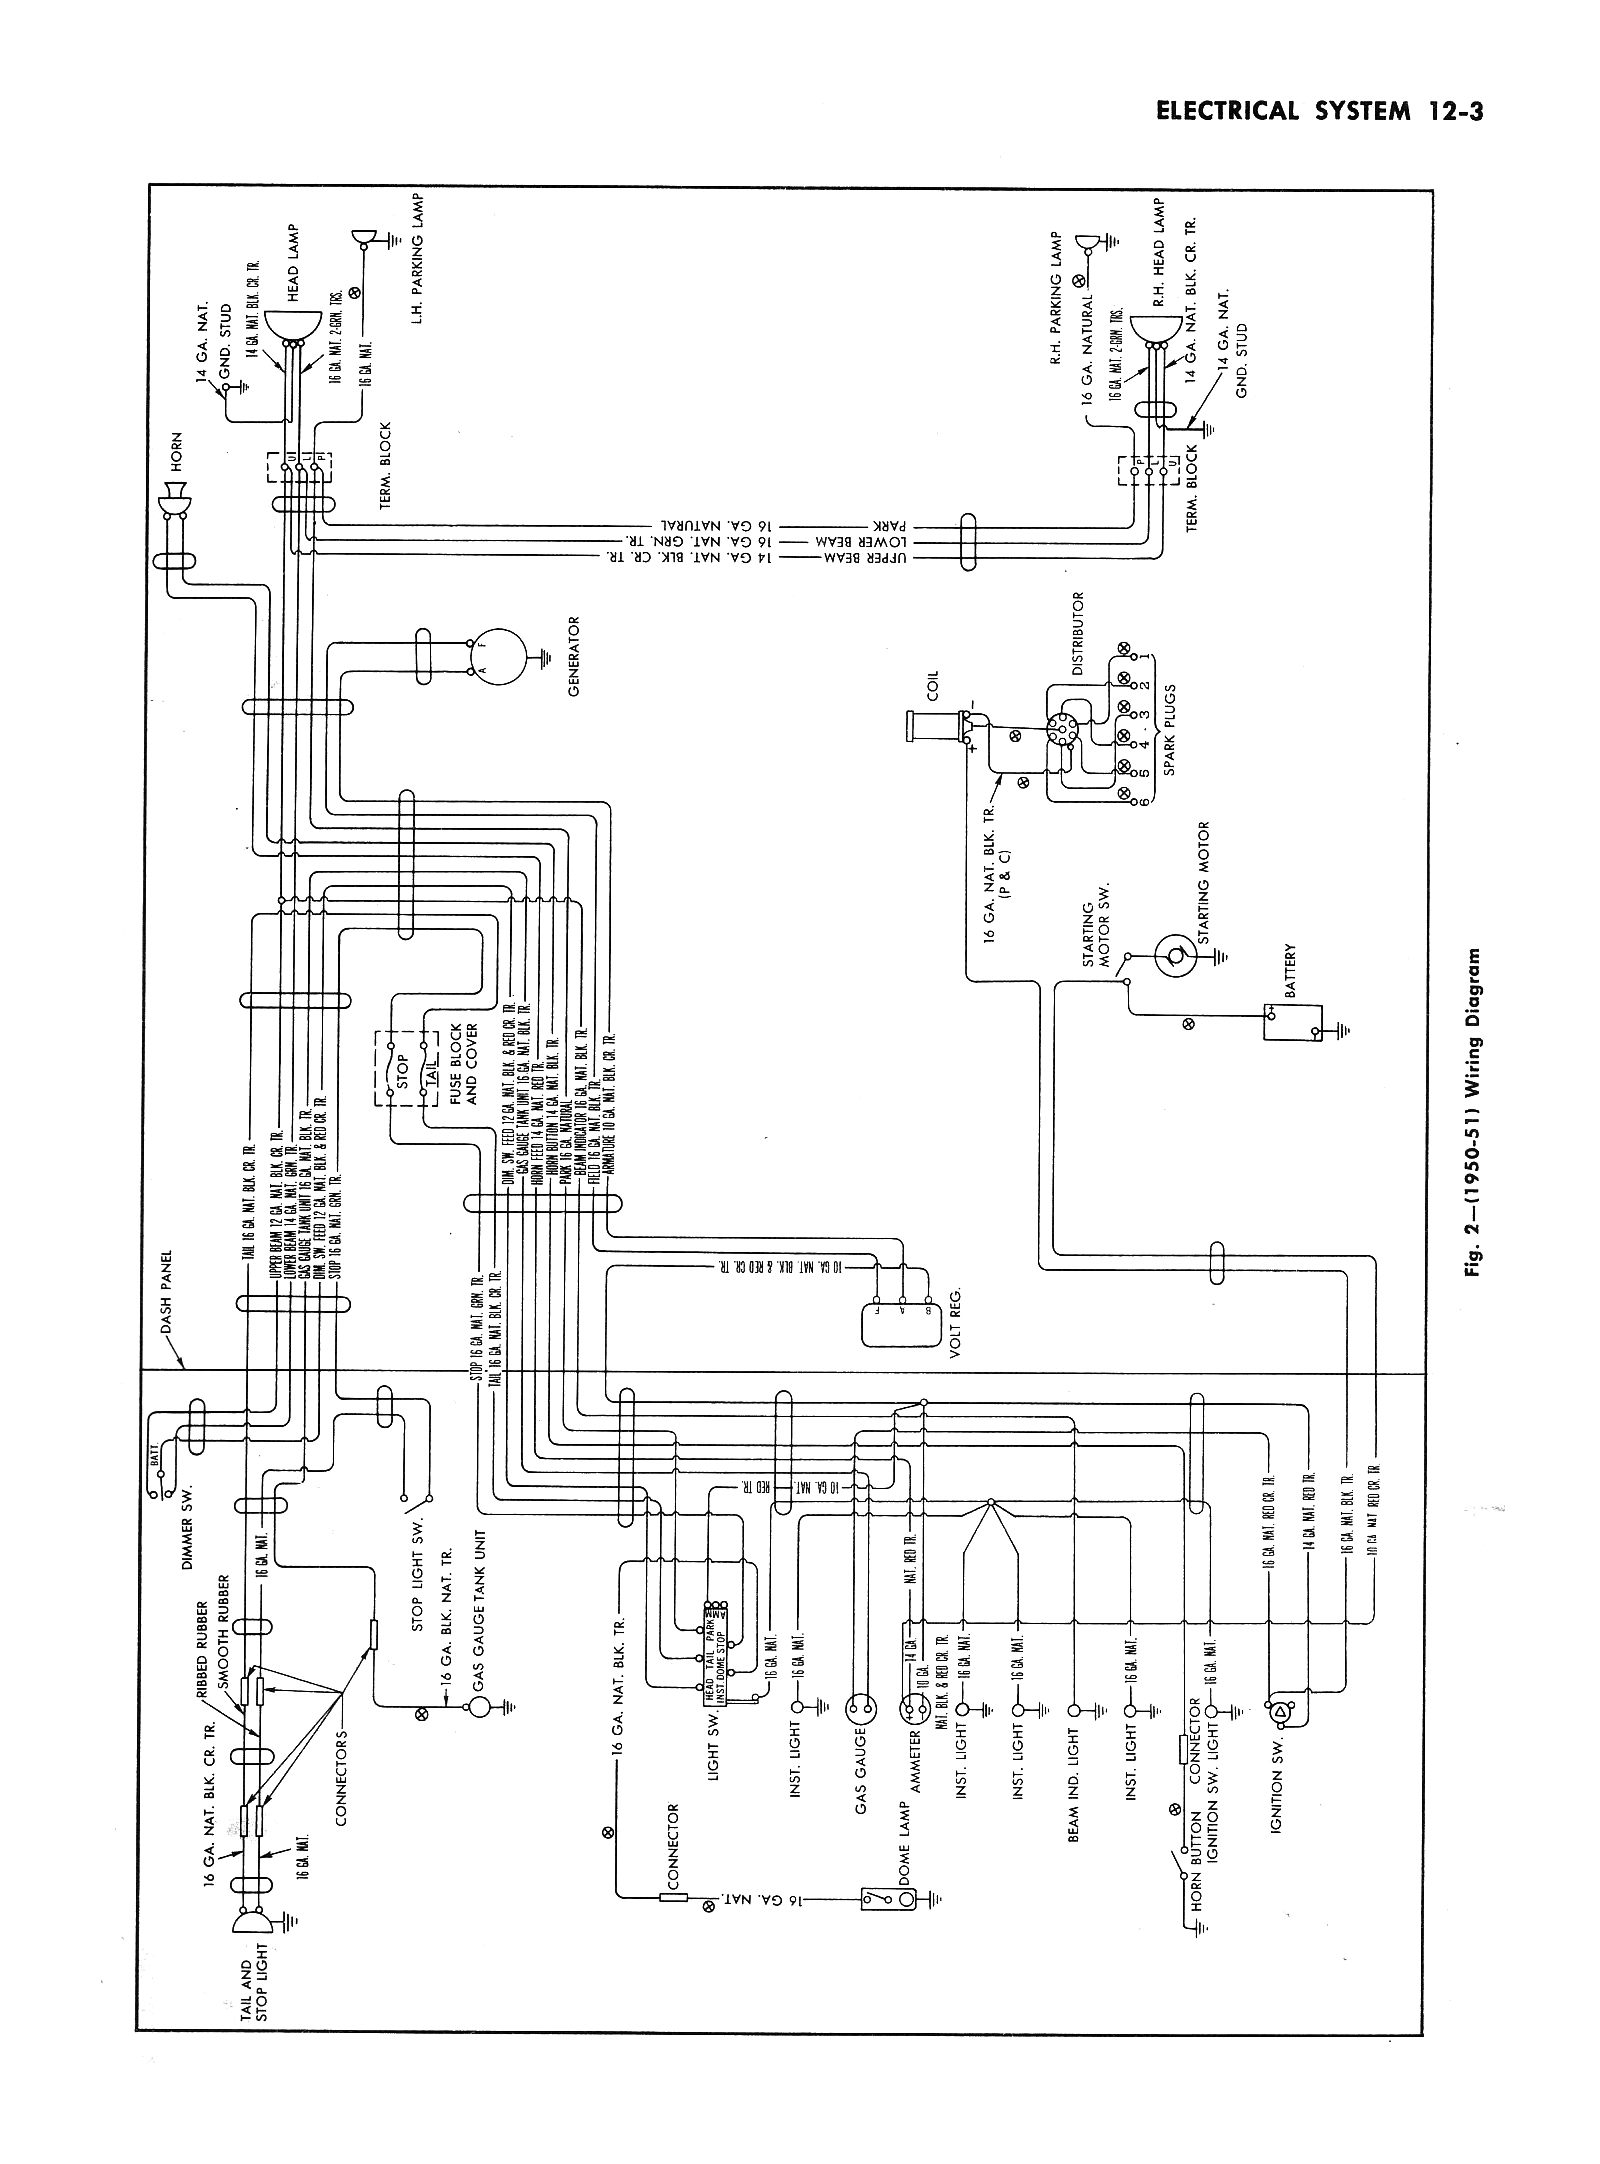 wiring diagram pontiac 1949 1950 chassis wire center u2022 rh linxglobal co Pontiac Sunfire Starter Wiring Diagram 2003 Pontiac Grand AM Wiring Diagram